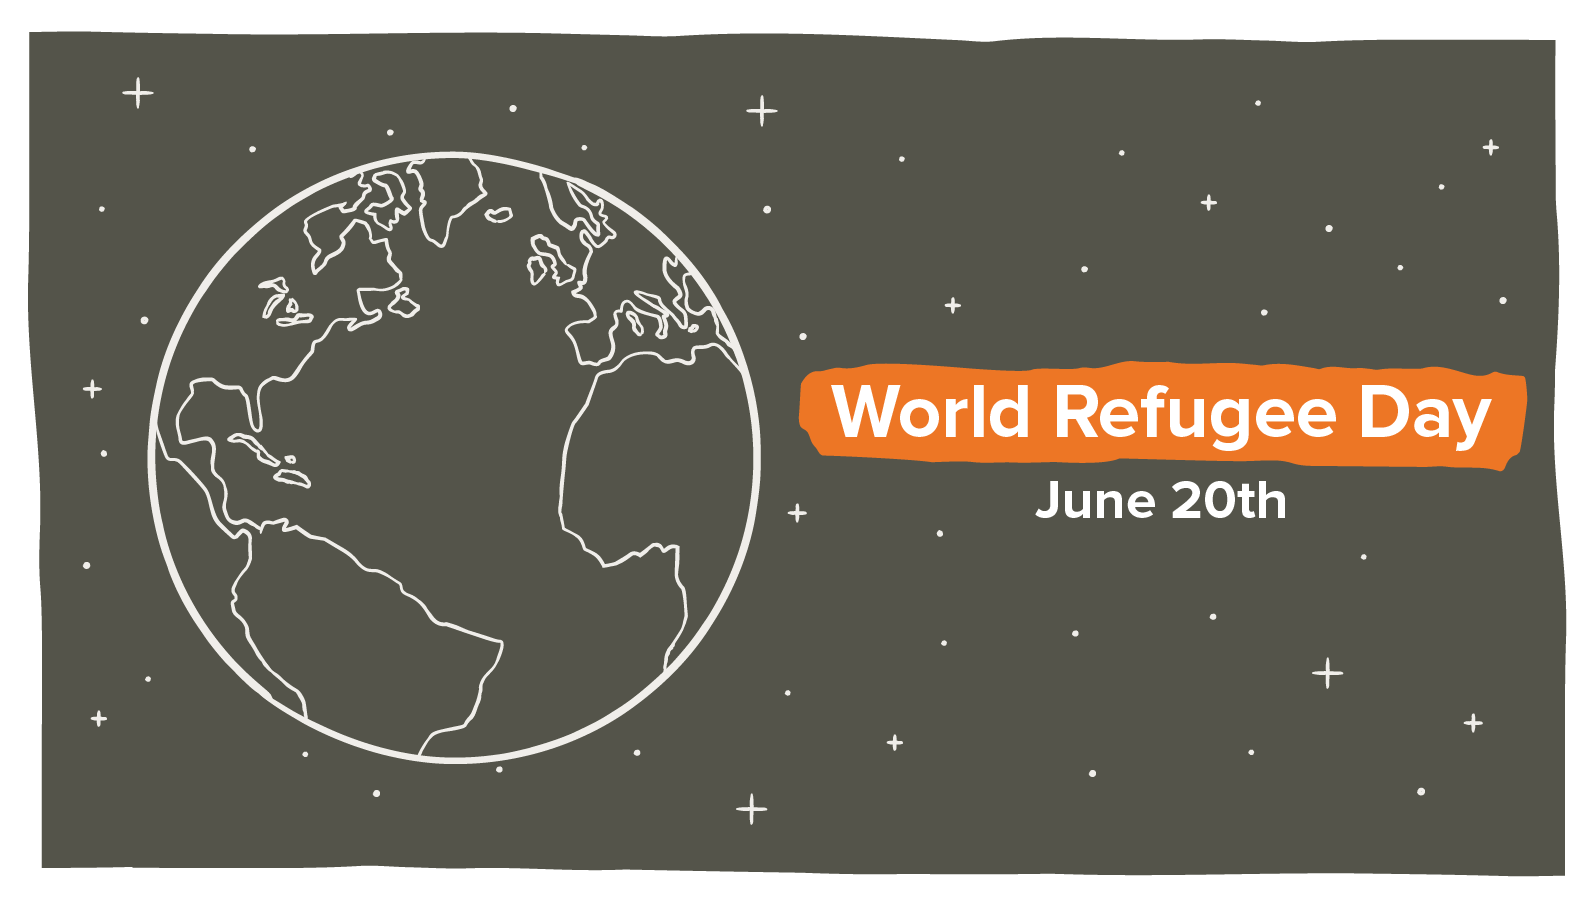 World Refugee Day June 20th.